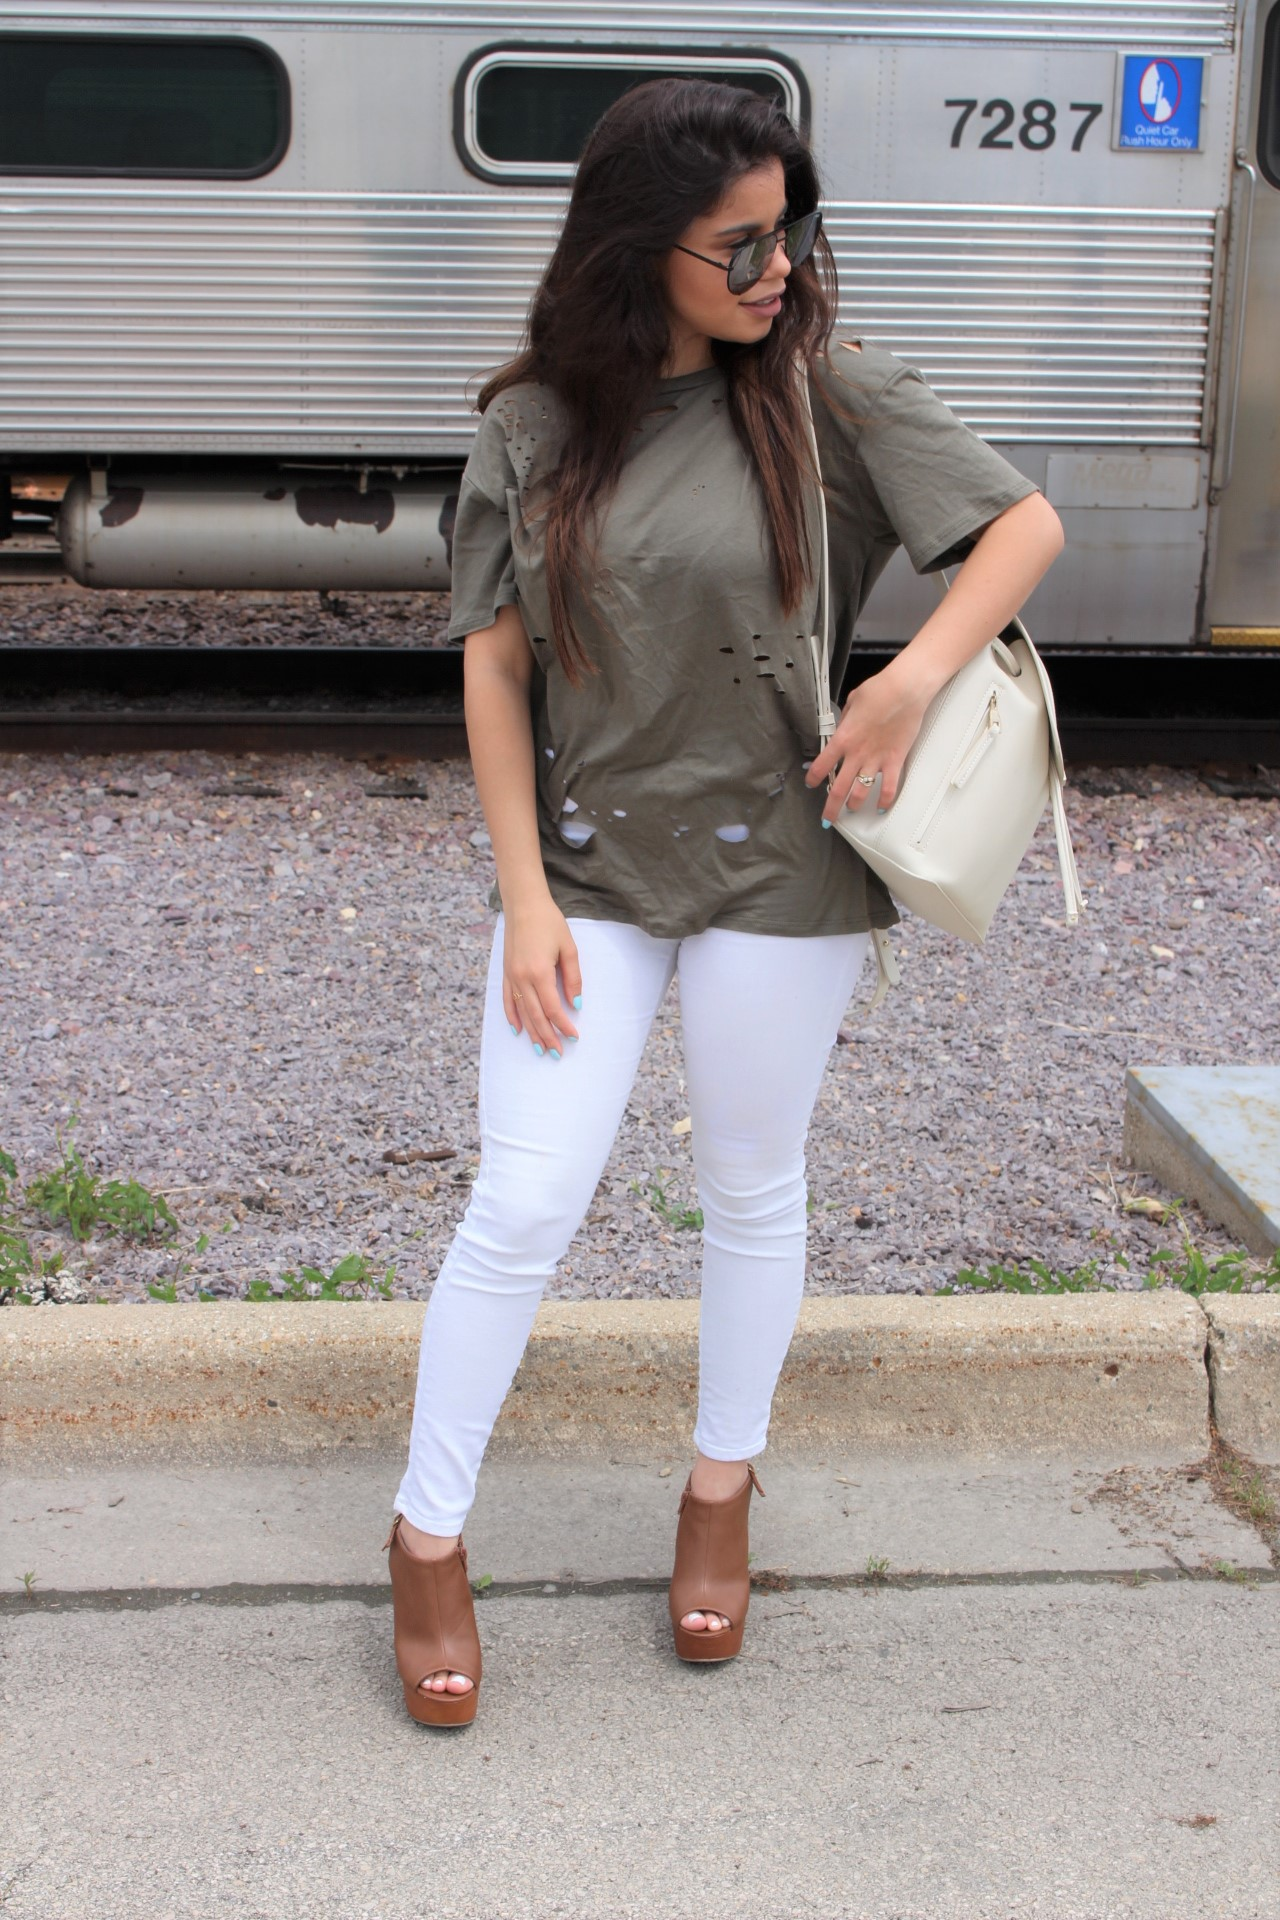 Tobi verde militar clothing summer shoes details quay australia high key olive shirt outfit white pants ALDO bags OOTD outfit of the night casual outfit OOTN by Alejandra Avila Tu fashion petite (2)